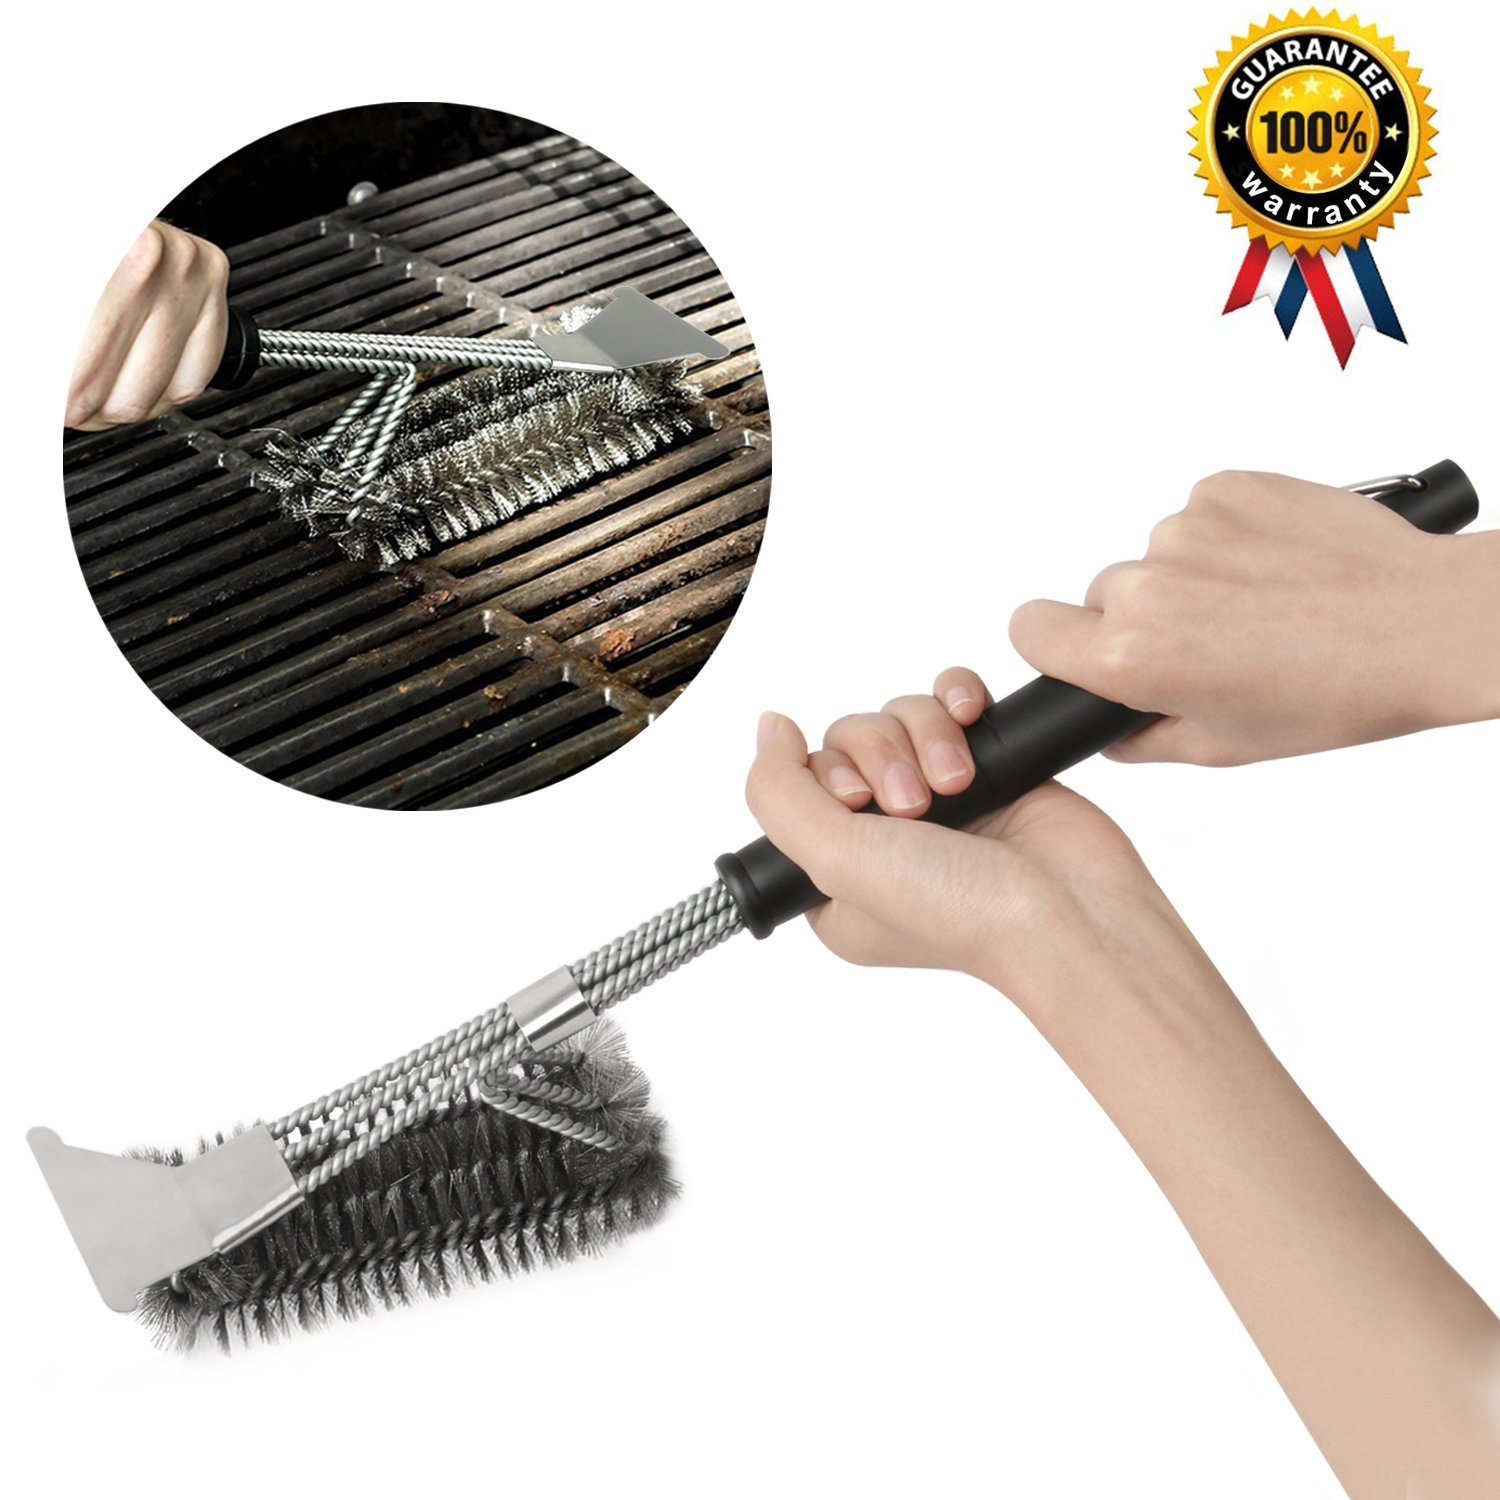 AMILE Grill Brushes, Barbecue Brushes 18'' Stainless Steel Woven BBQ Cleaning Scraper Wire 3 in 1 for Grills, Durable & Effective Barbecue Tool